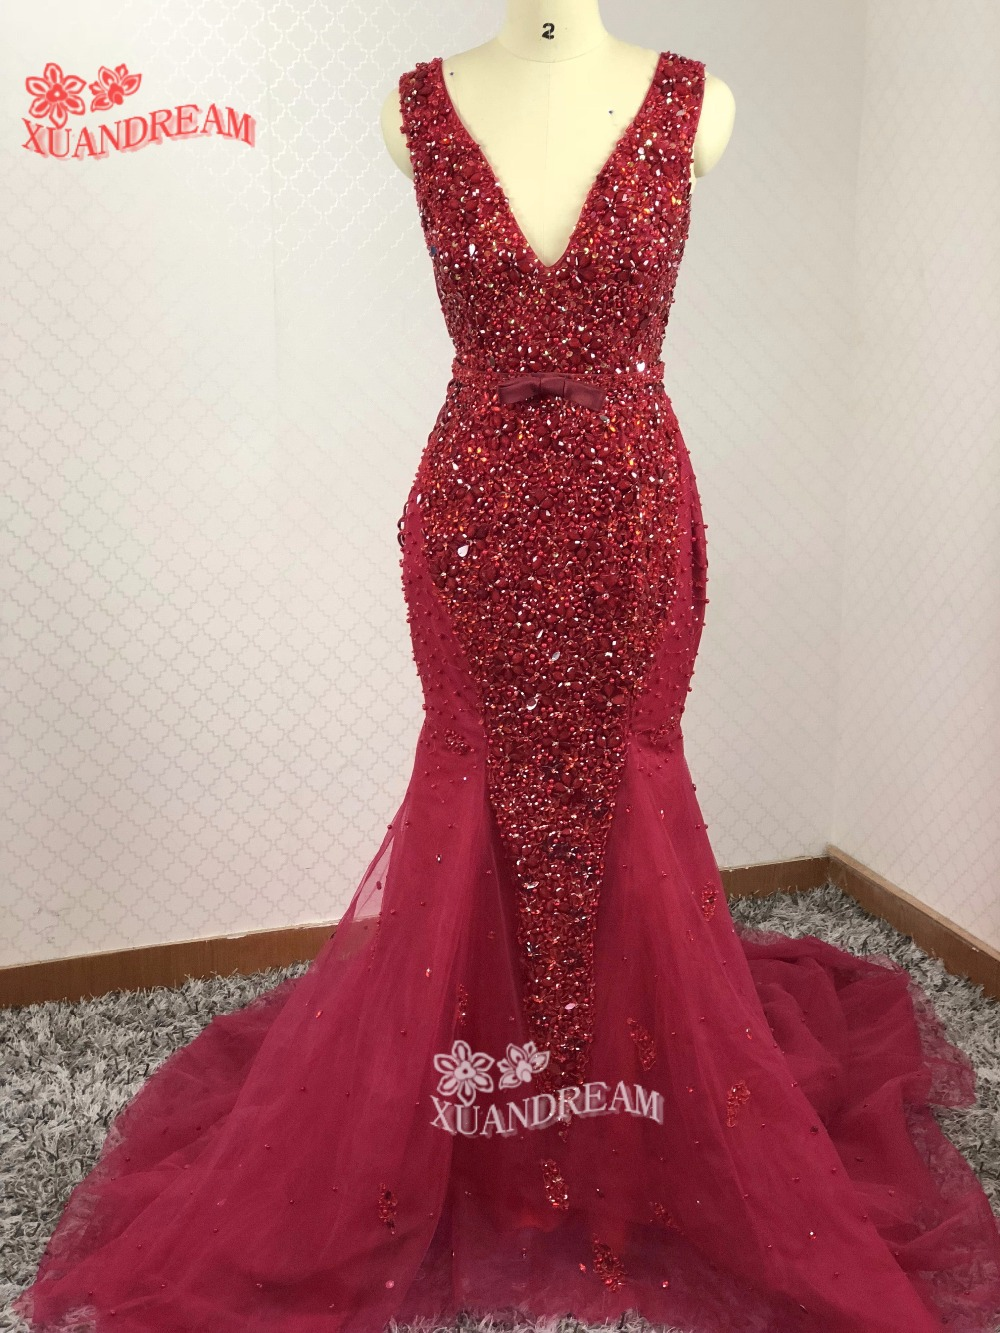 XUANDREAM Heavy crystals beads bling bling evening dress vestidos-de-fiesta elegant v neck side lace up mermaid evening dresses (China)